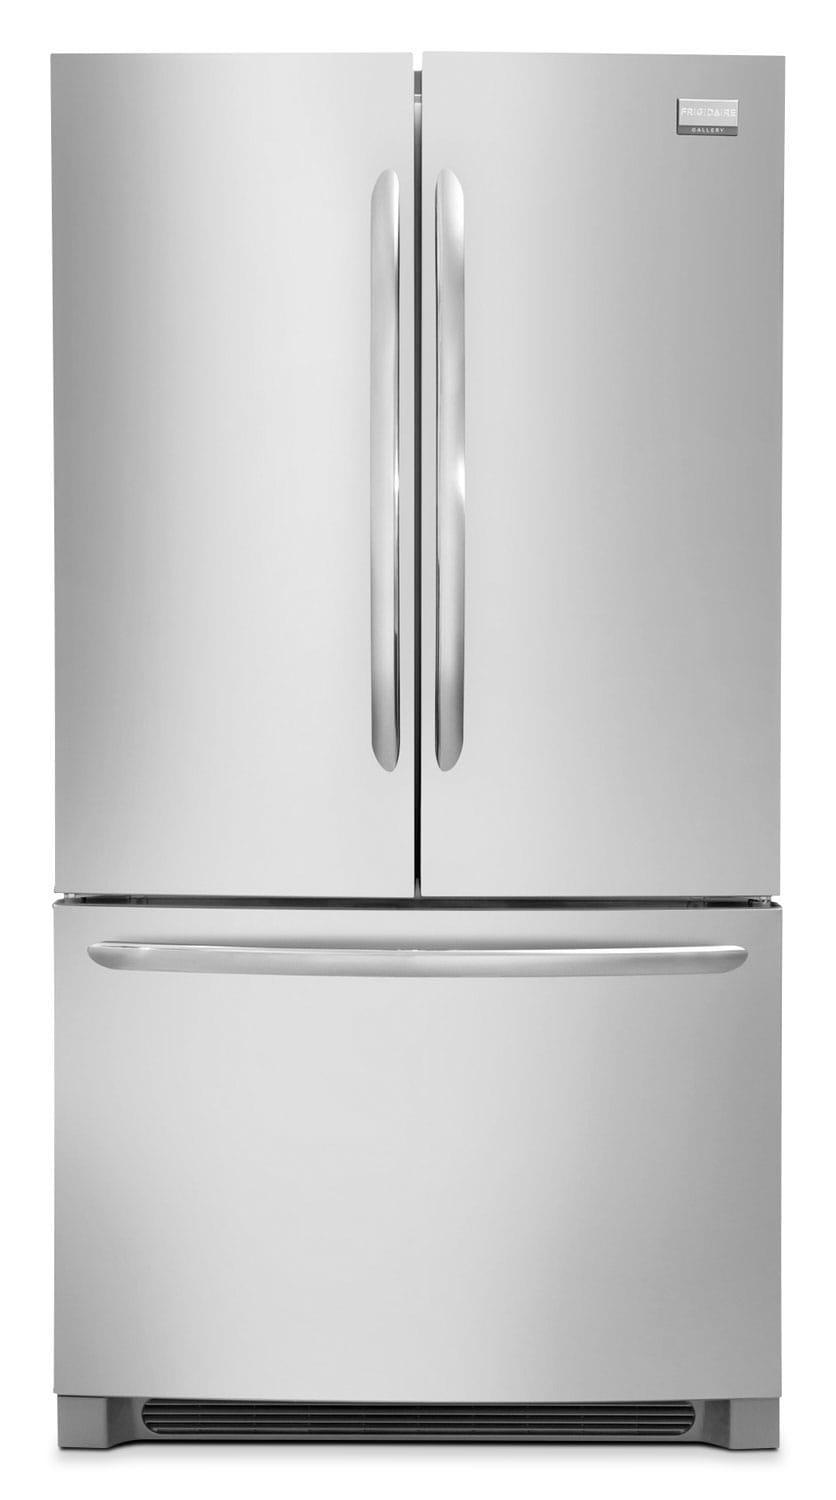 Frigidaire Gallery Stainless Steel French Door Refrigerator (27.6 Cu. Ft.) - FGHN2866PF